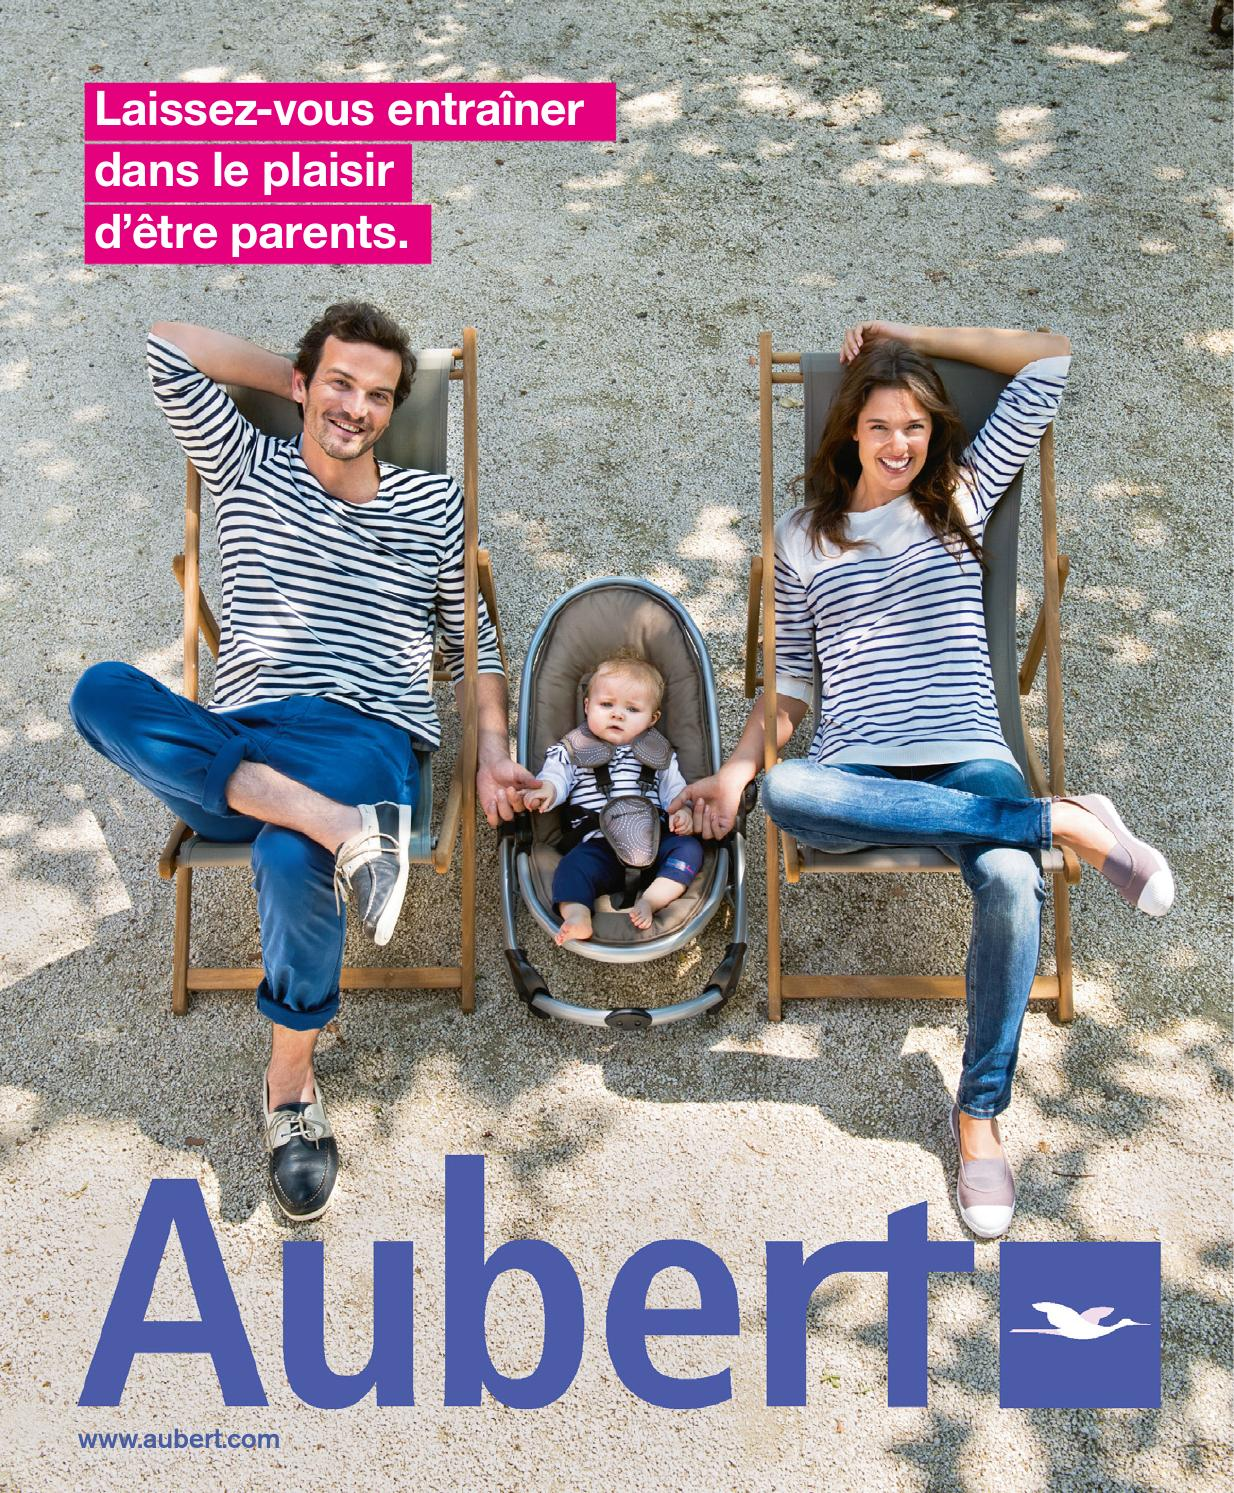 Aubert 2014 Guide By Joe Monroe Issuu